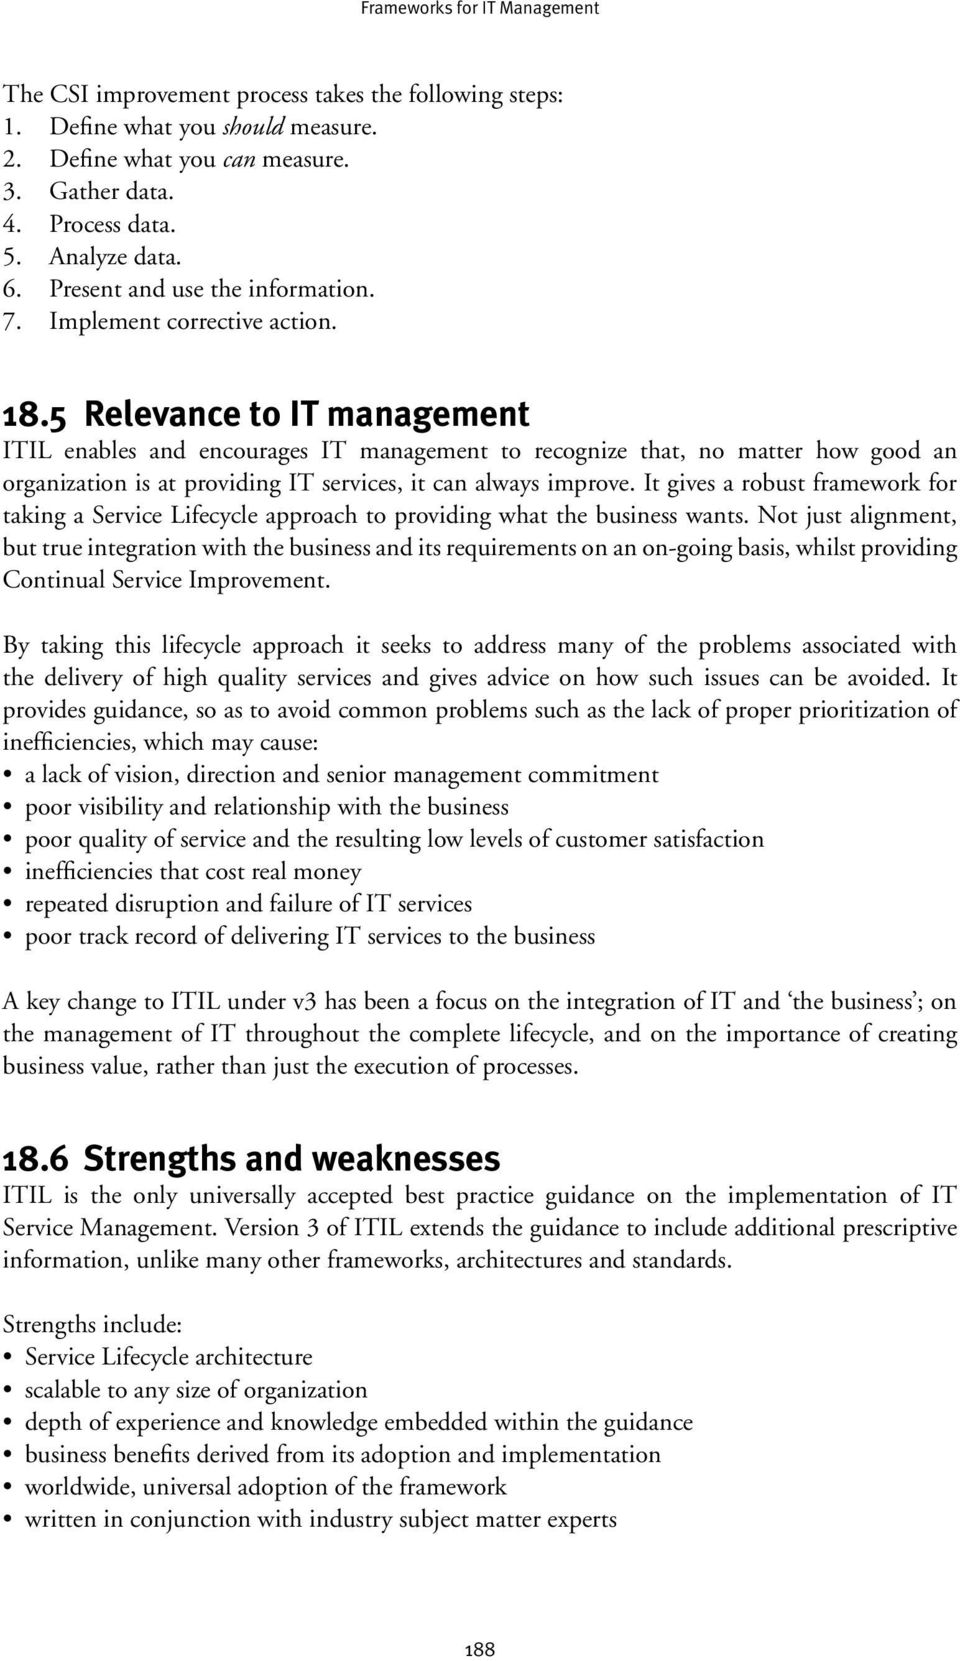 5 Relevance to IT management ITIL enables and encourages IT management to recognize that, no matter how good an organization is at providing IT services, it can always improve.